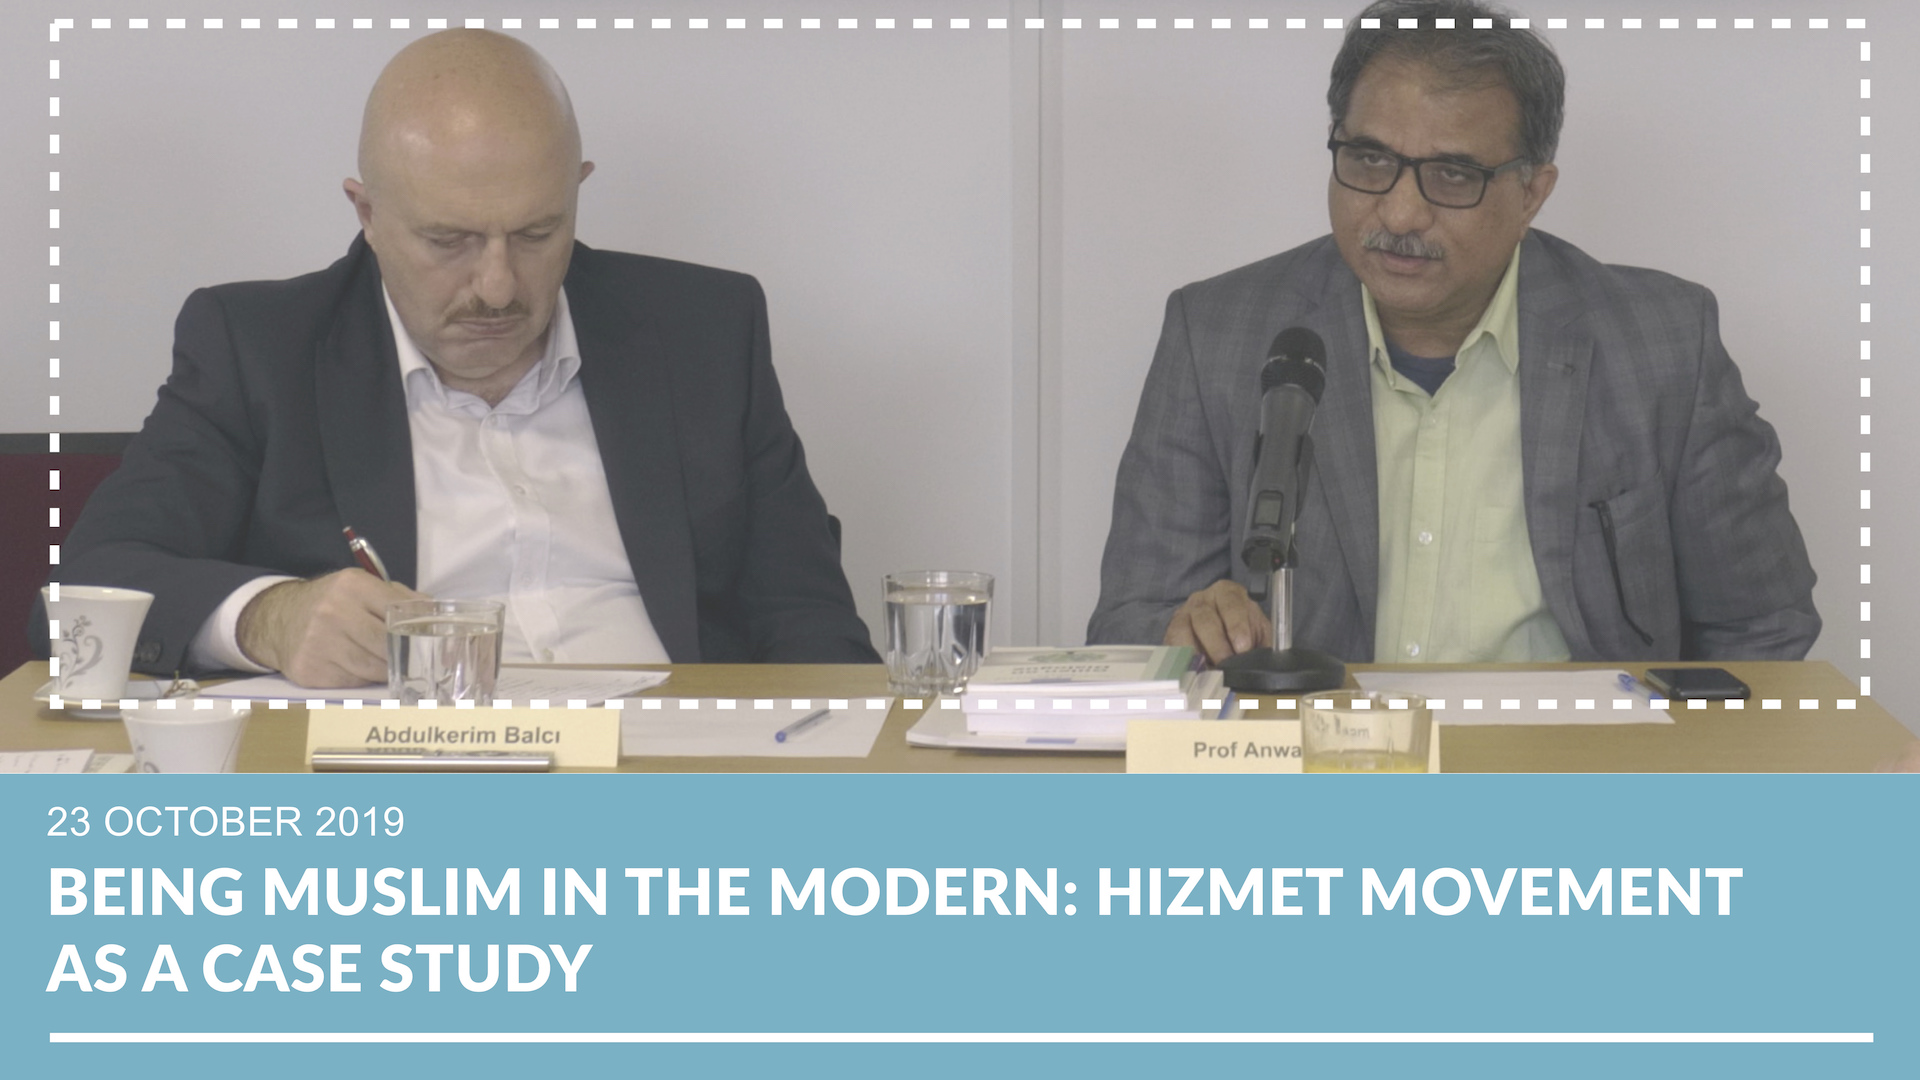 Being Muslim in the Modern: Hizmet Movement as a Case Study | Prof Anwar Alam